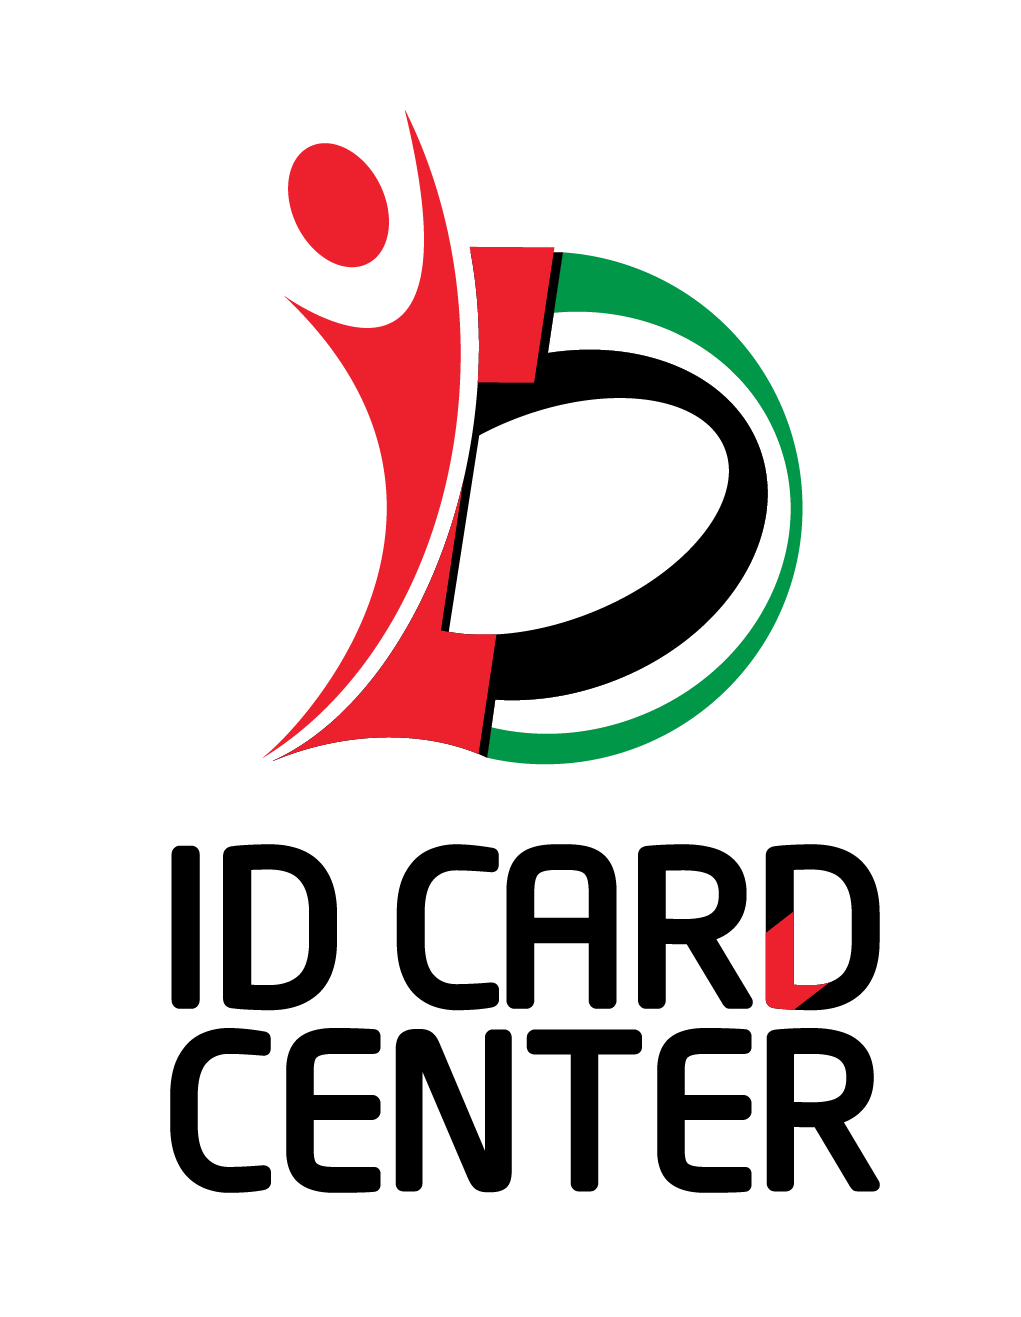 ID Card Center & Accounting Services LLC